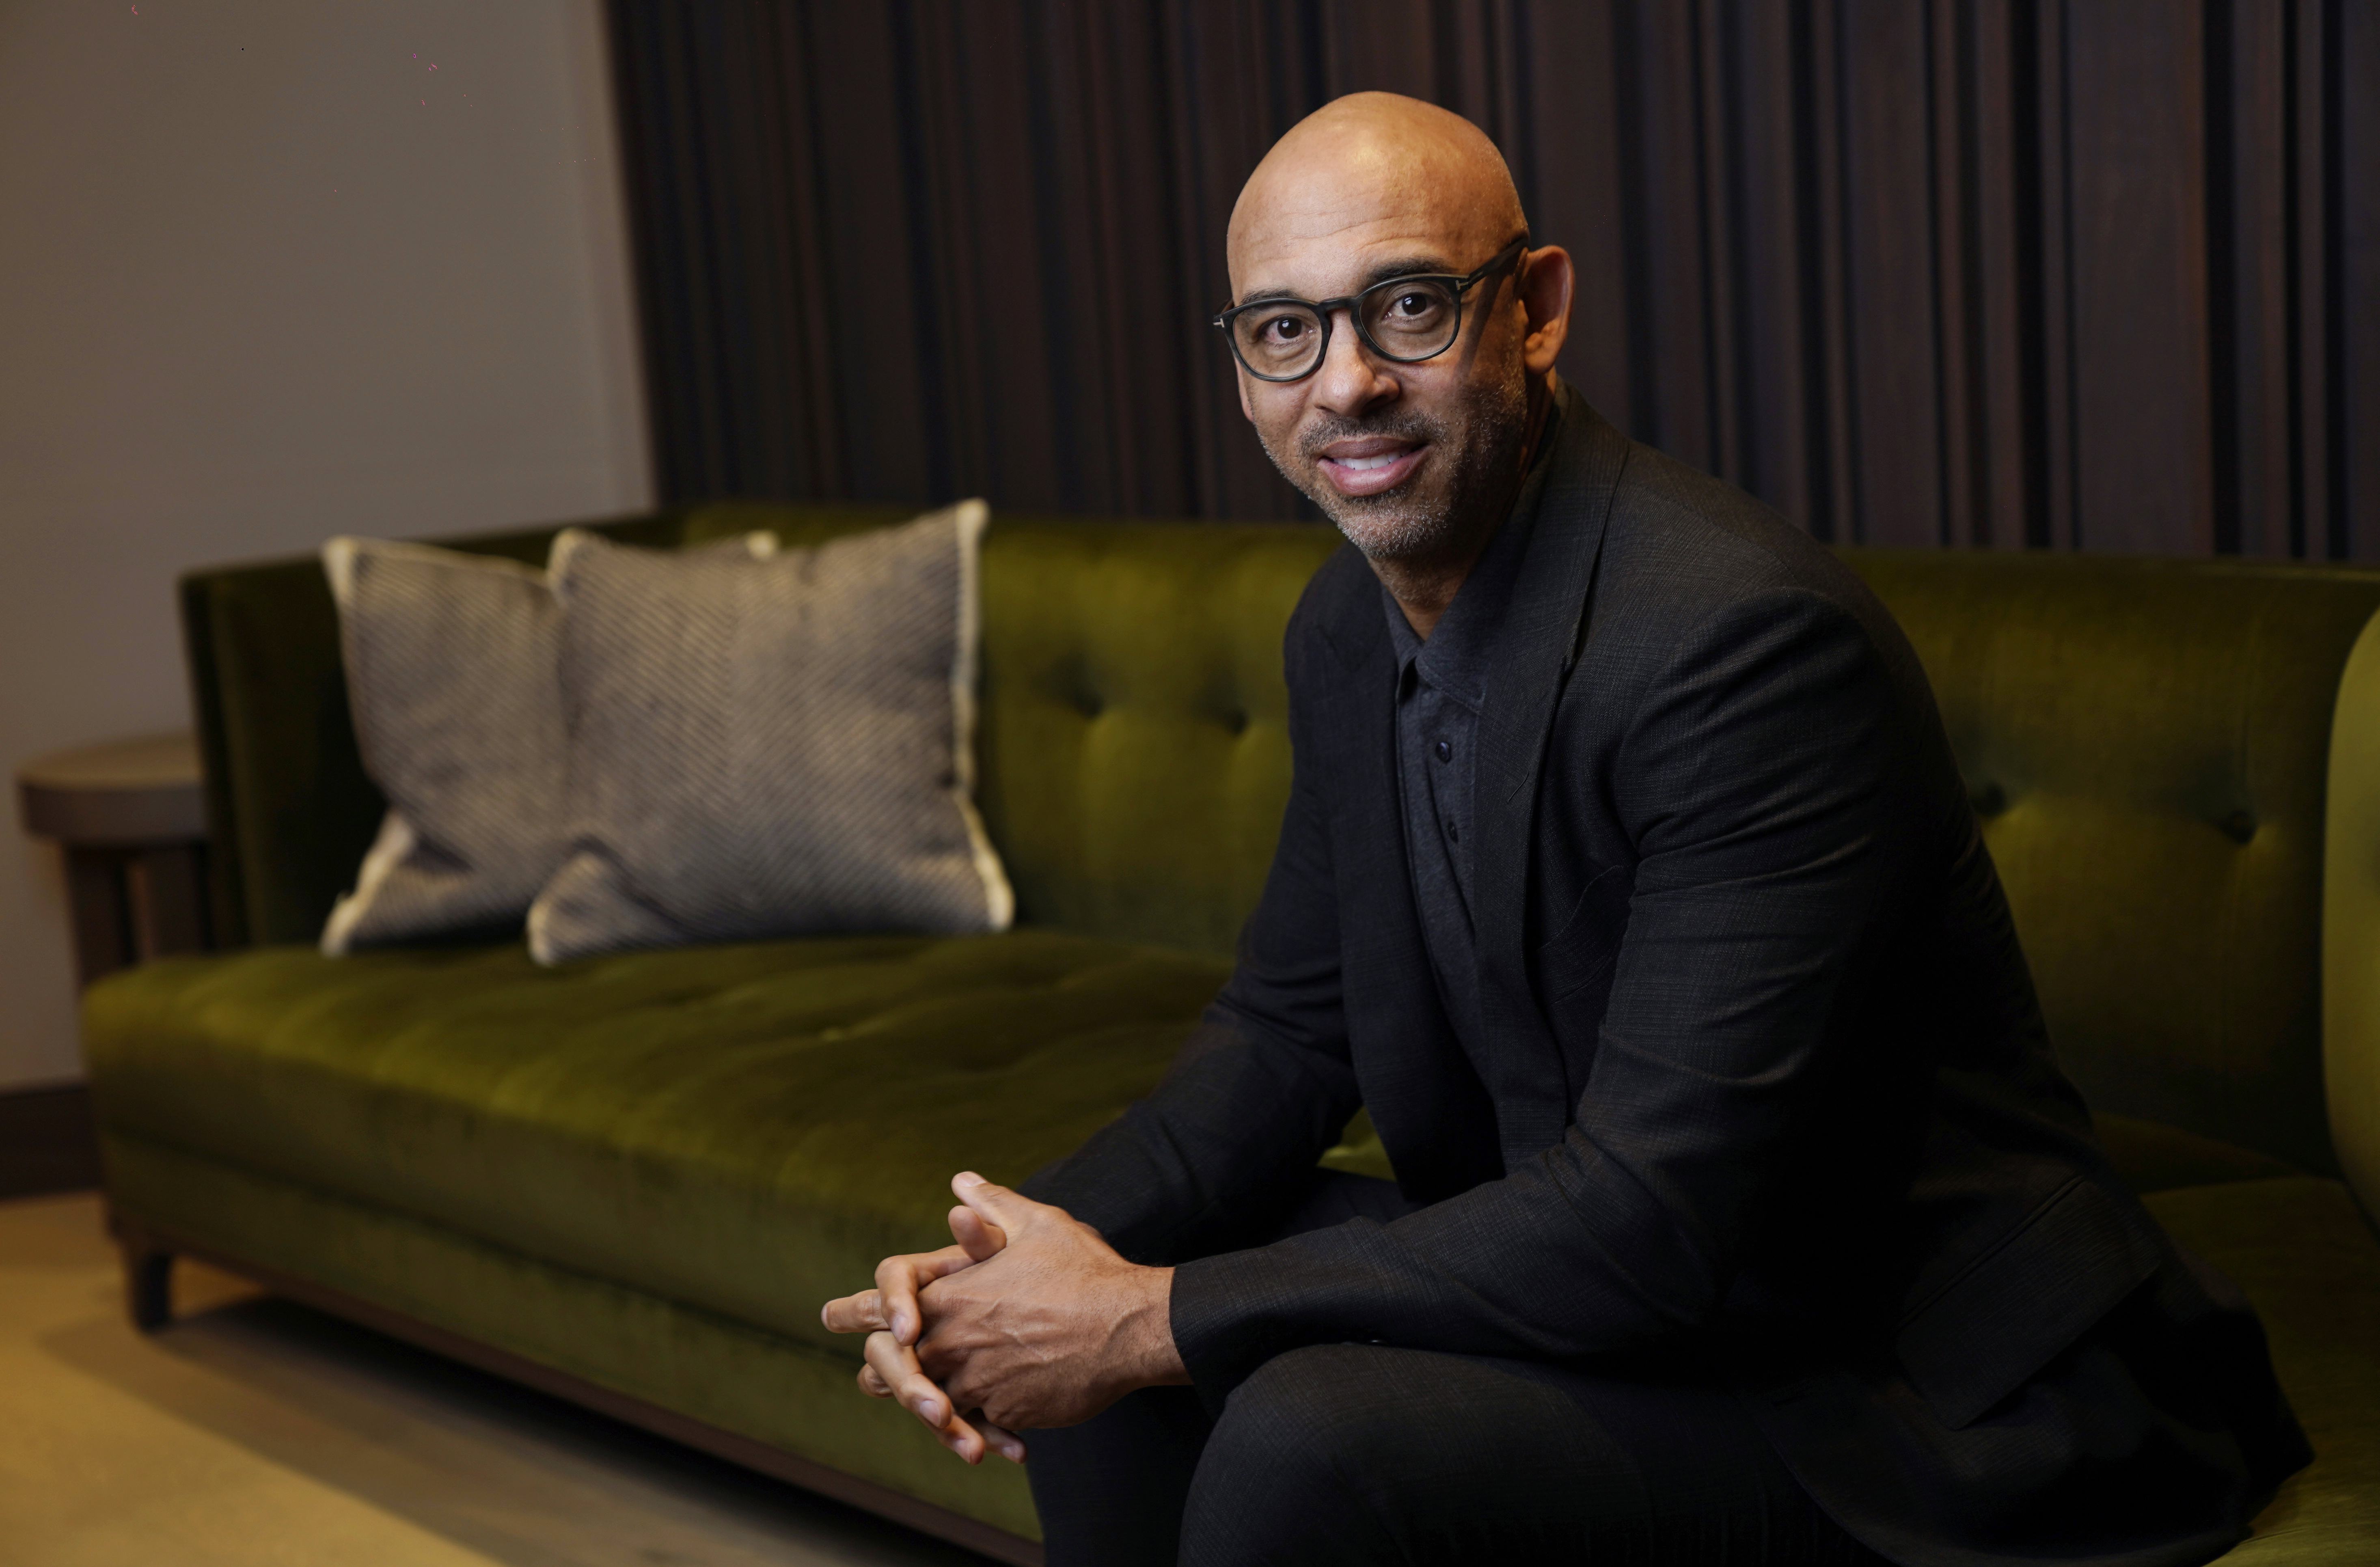 Harvey Mason jr., CEO of The Recording Academy, poses for a portrait at Harvey Mason Media music production studios earlier this month in Burbank, California.